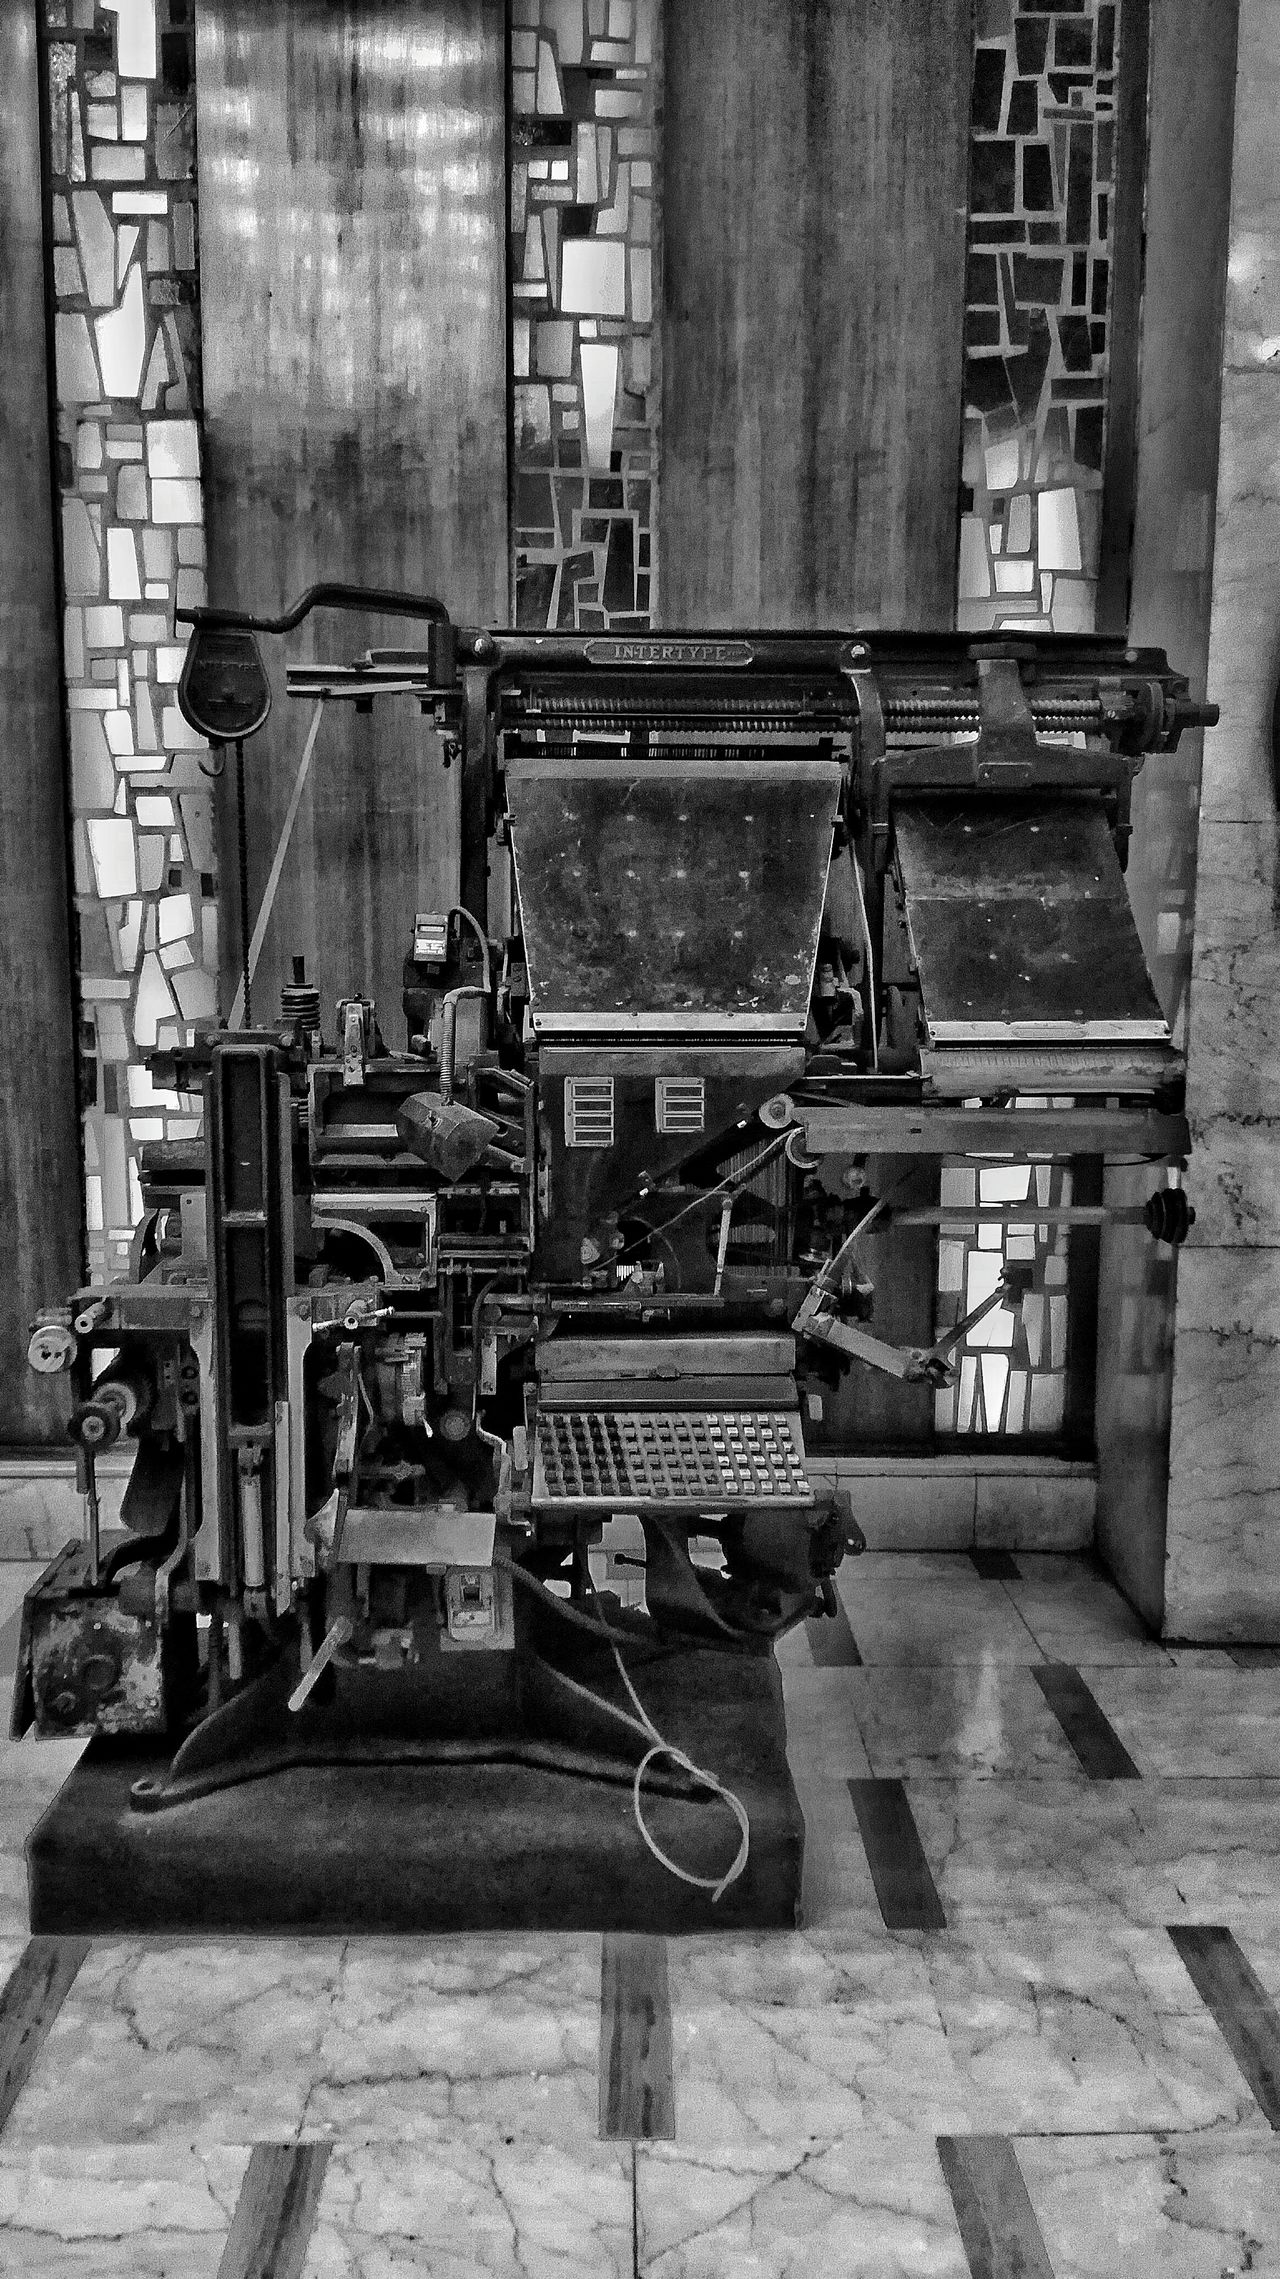 No People Historical Old Old-fashioned Writing Machine  Huawei P9 Lite Mobilephotography First Eyeem Photo EyeEmNewHere Check This Out Blackandwhite Photography